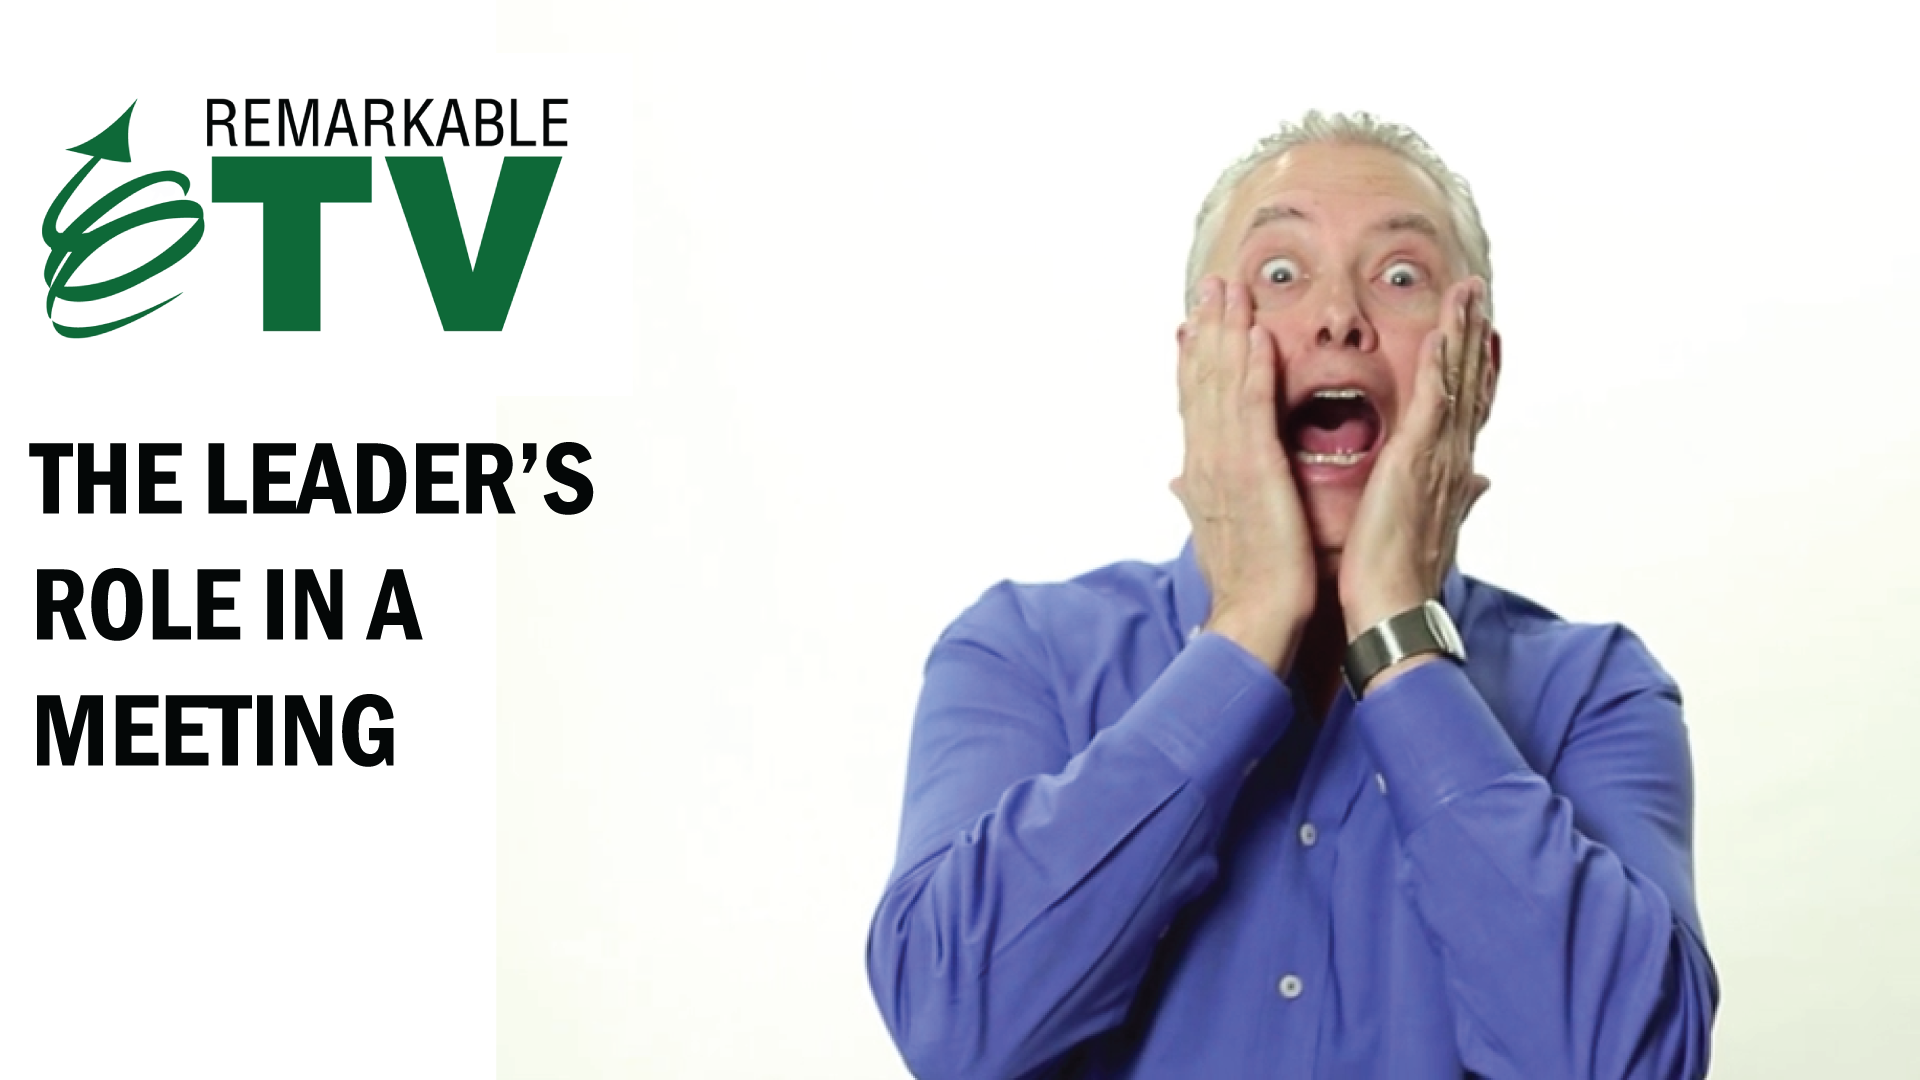 Meetings shouldn't make us scream. We can avoid having these meeting horror stories by knowing the leader's role in a meeting. Find out what we mean in this episode of Remarkable TV with Kevin Eikenberry.